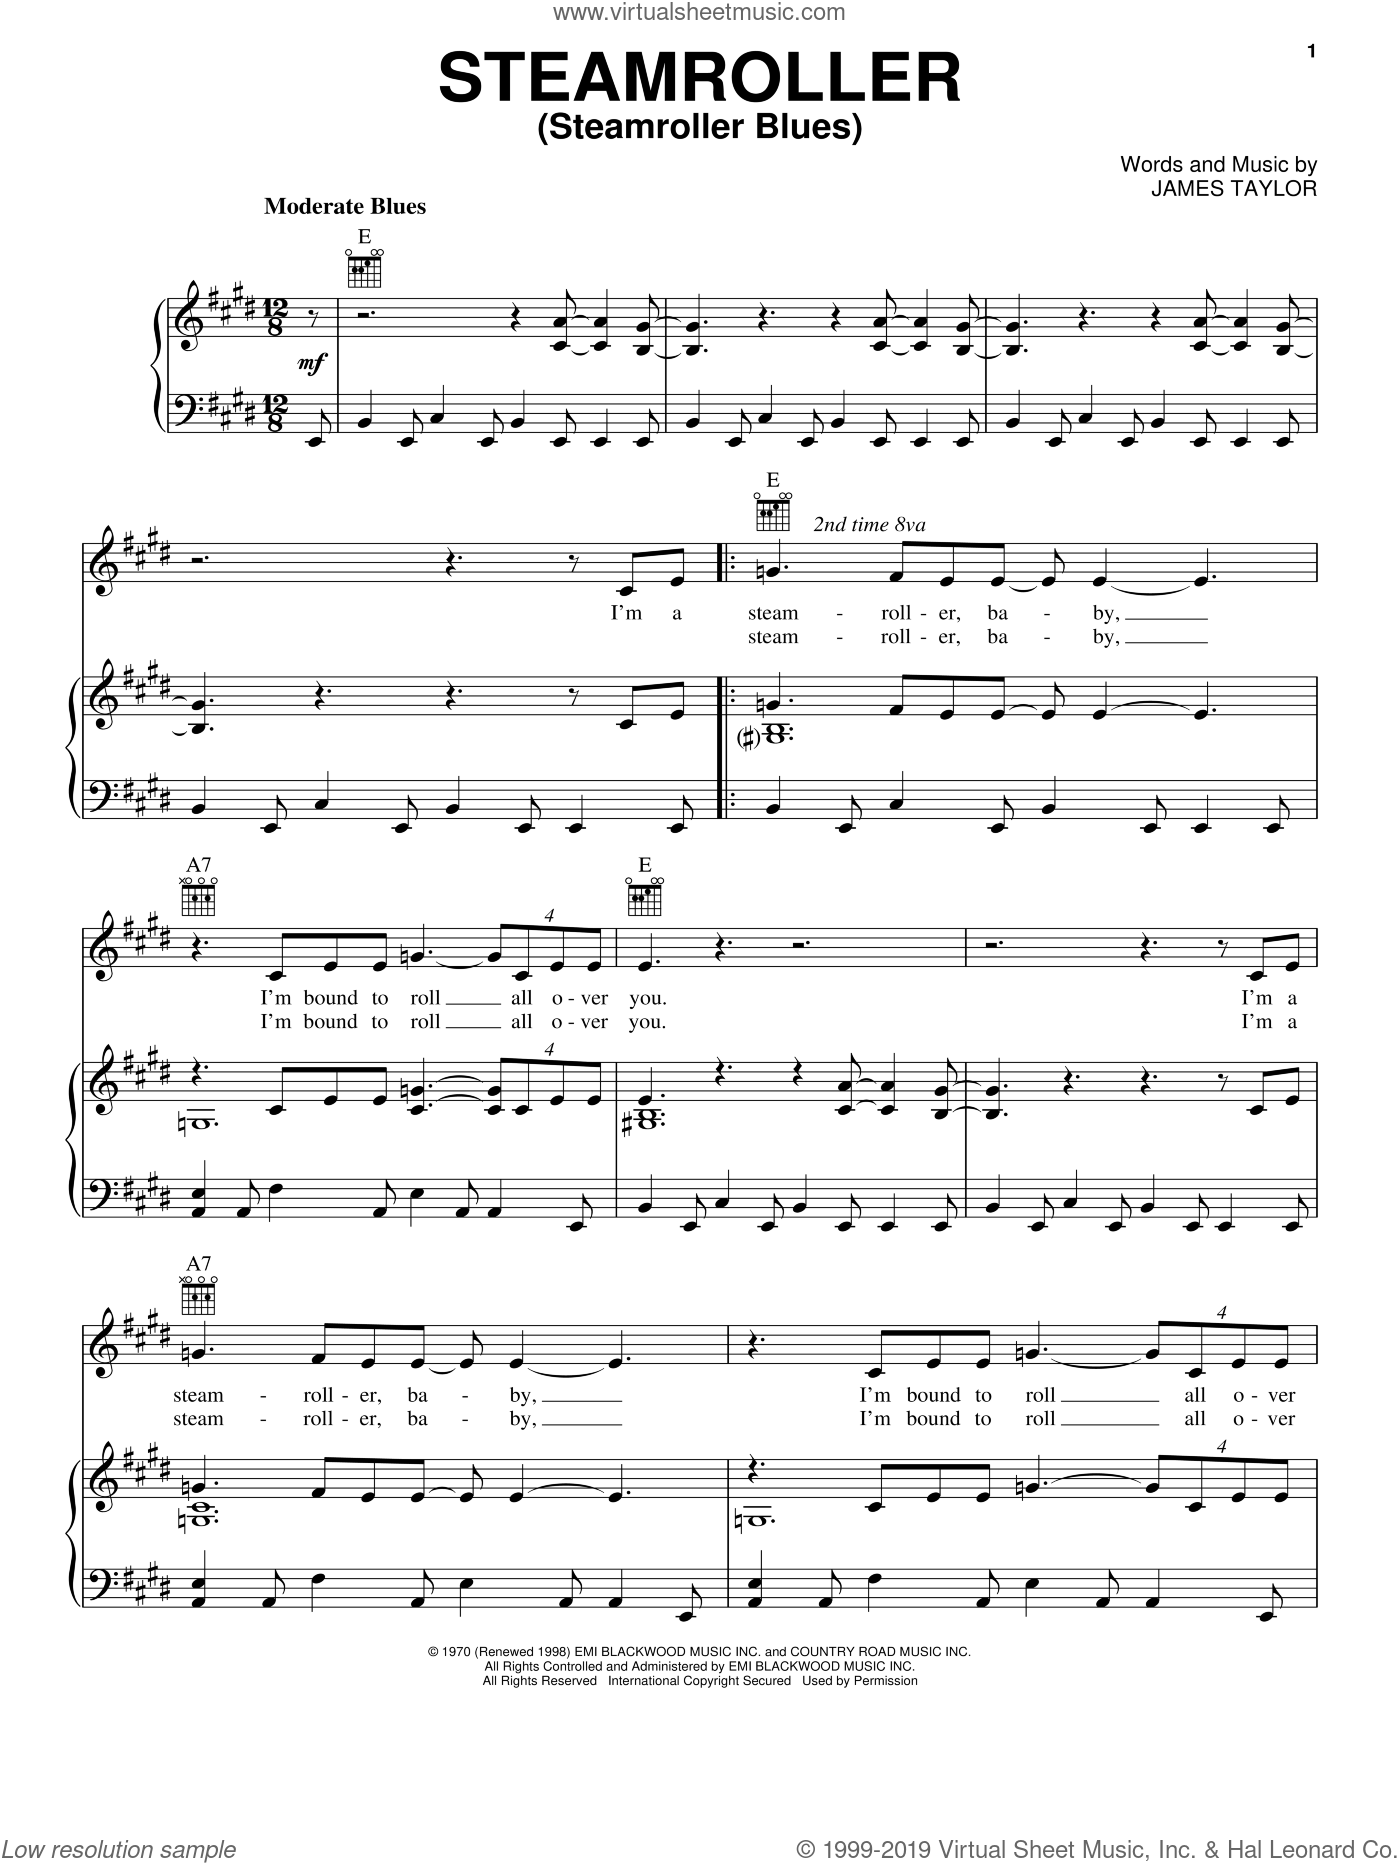 Steamroller (Steamroller Blues) sheet music for voice, piano or guitar by Elvis Presley, Billy Dean and James Taylor, intermediate skill level